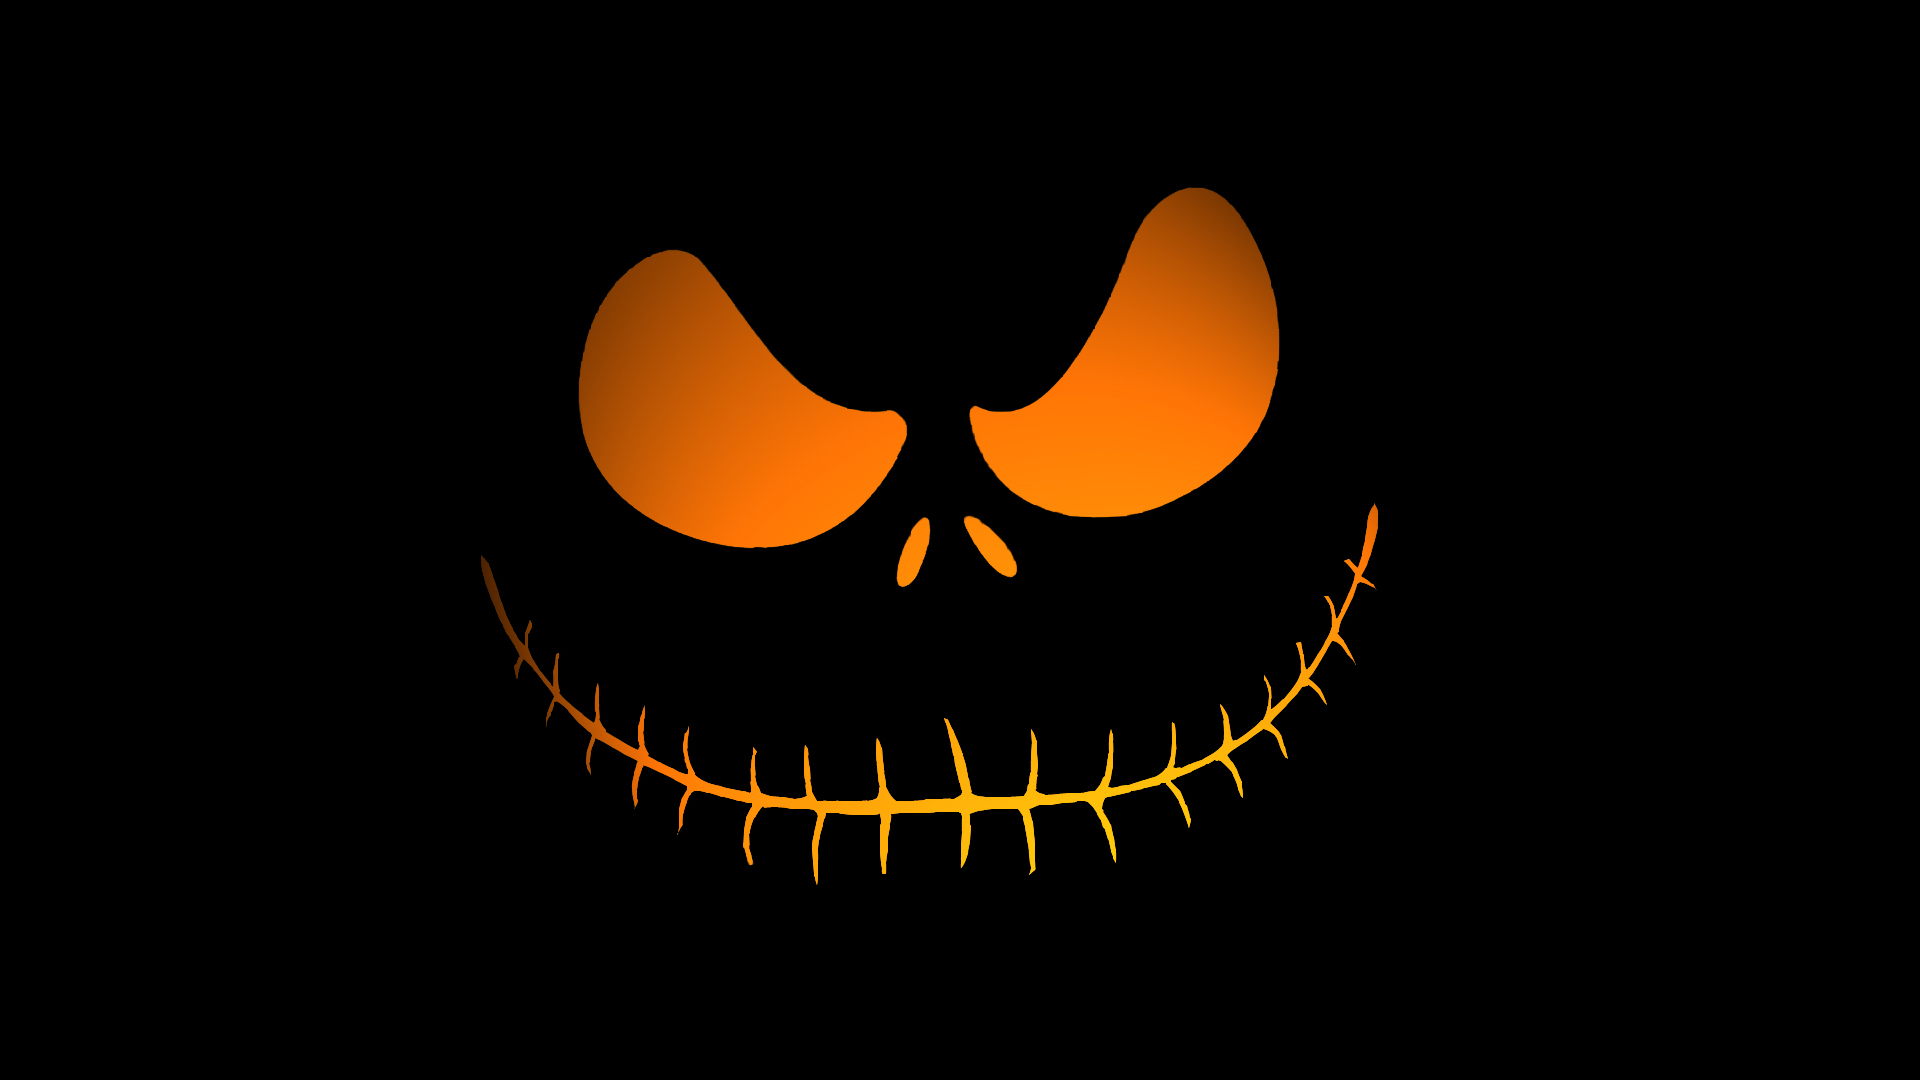 Free-download-halloween-backgrounds-07.j